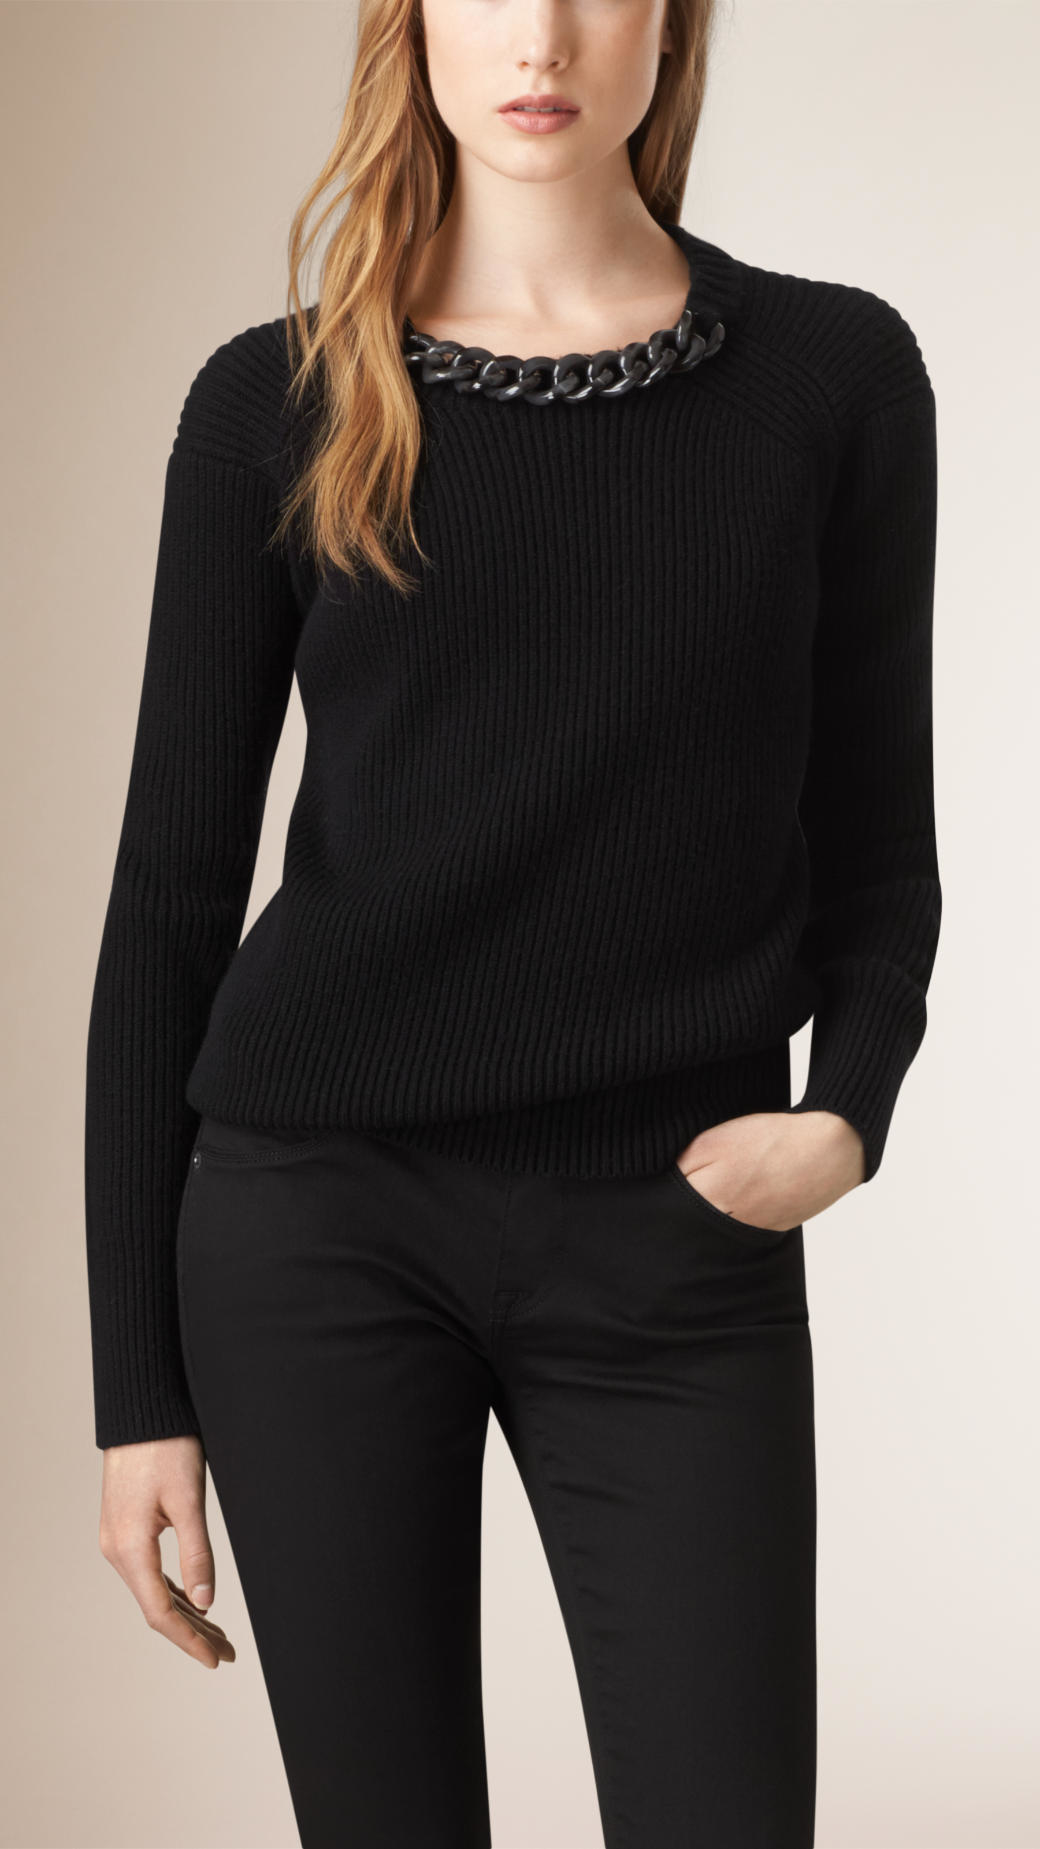 Wool Sweater Grey: Burberry Chain Detail Wool Cashmere Sweater In Black